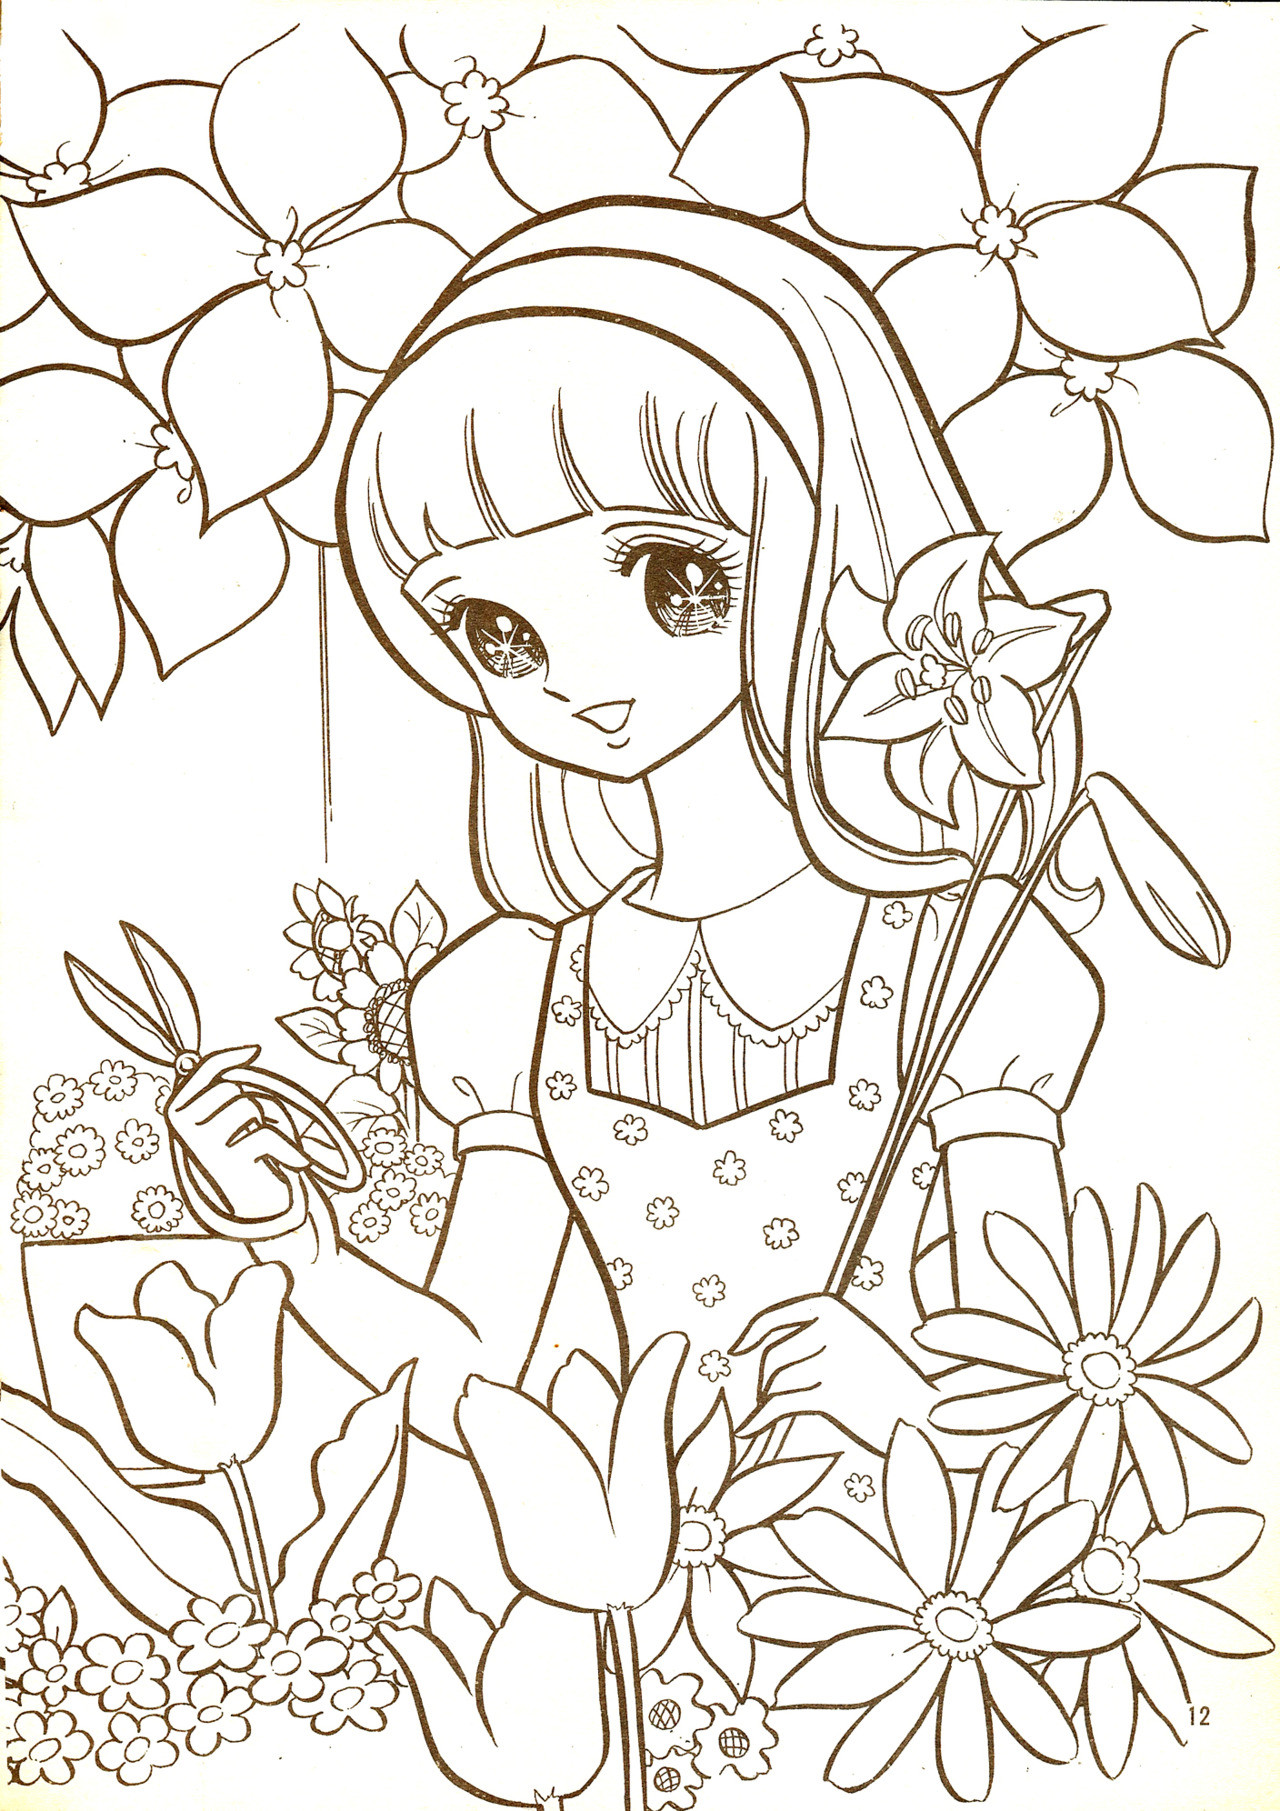 Vintage Coloring Book Pages  Pinterest Manga Coloring Books And Coloring Pages 7320